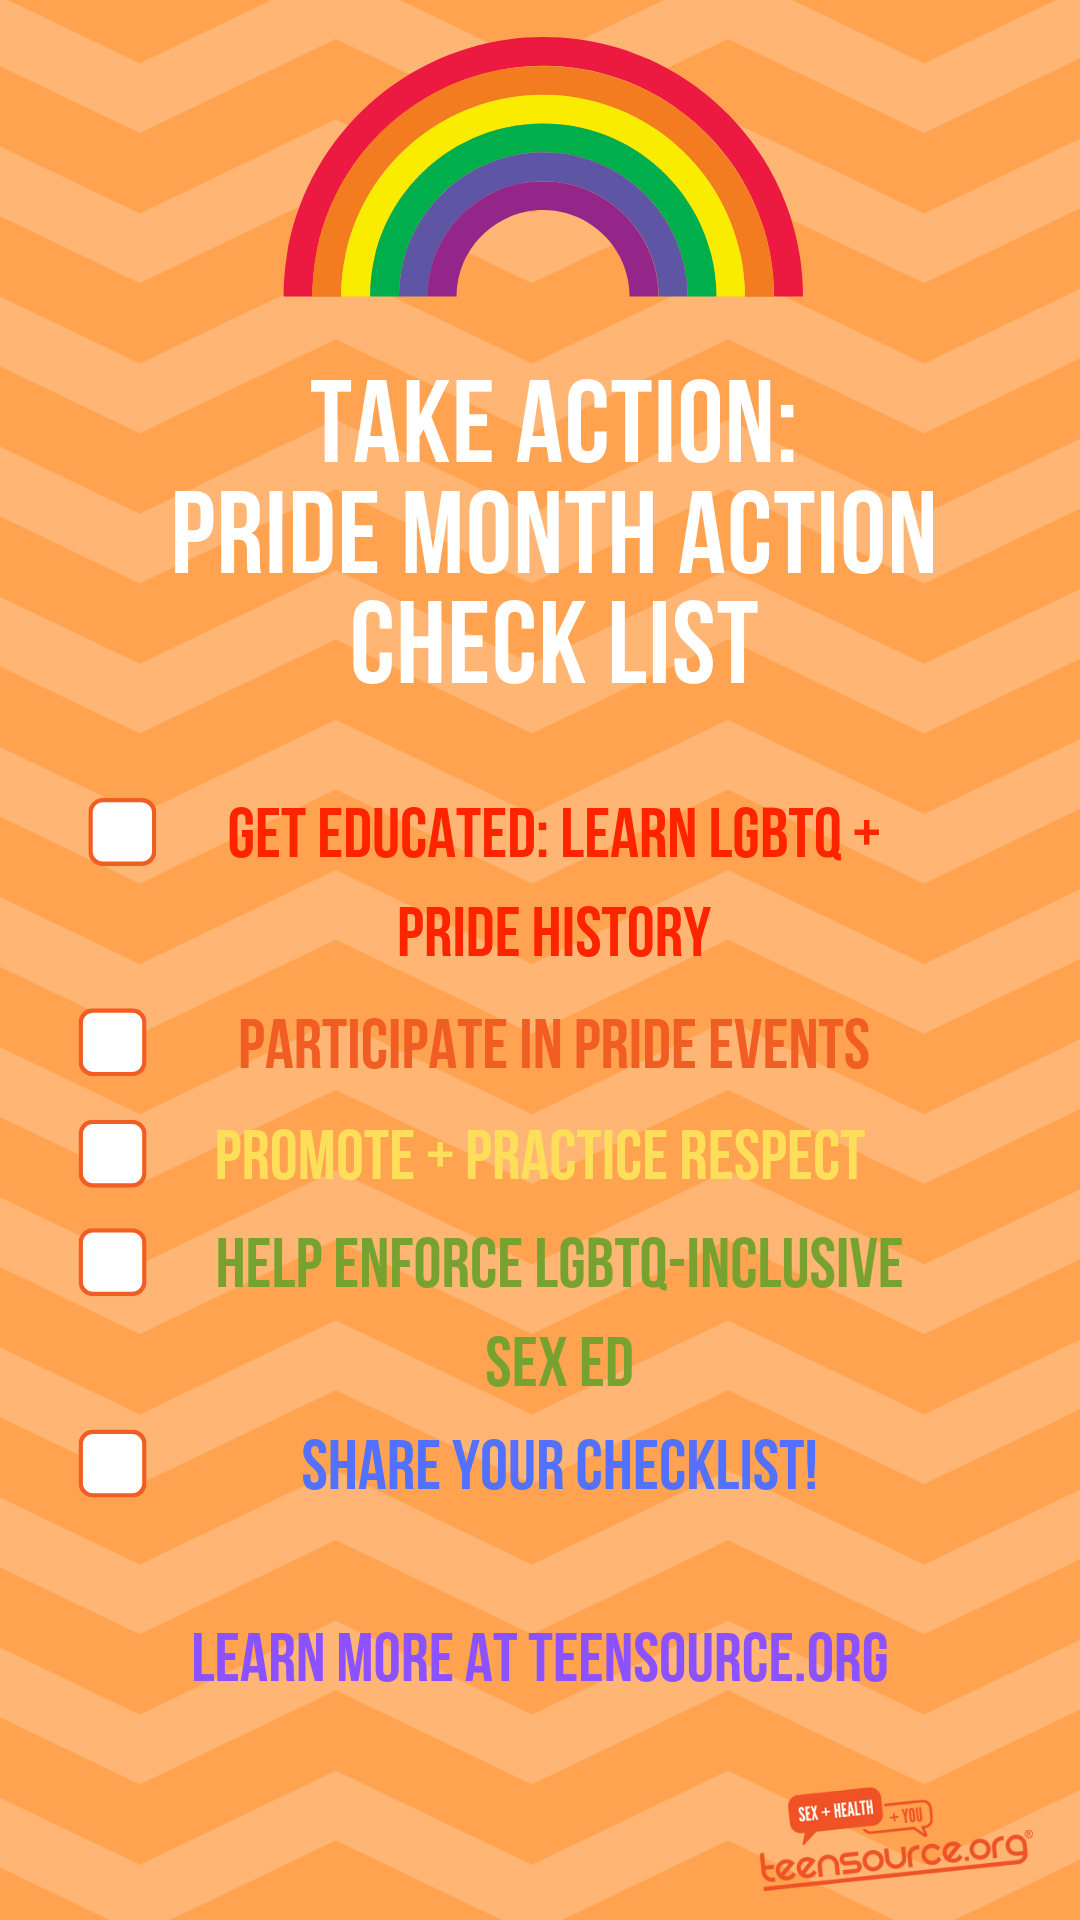 Take Action: Pride Month Action Check List